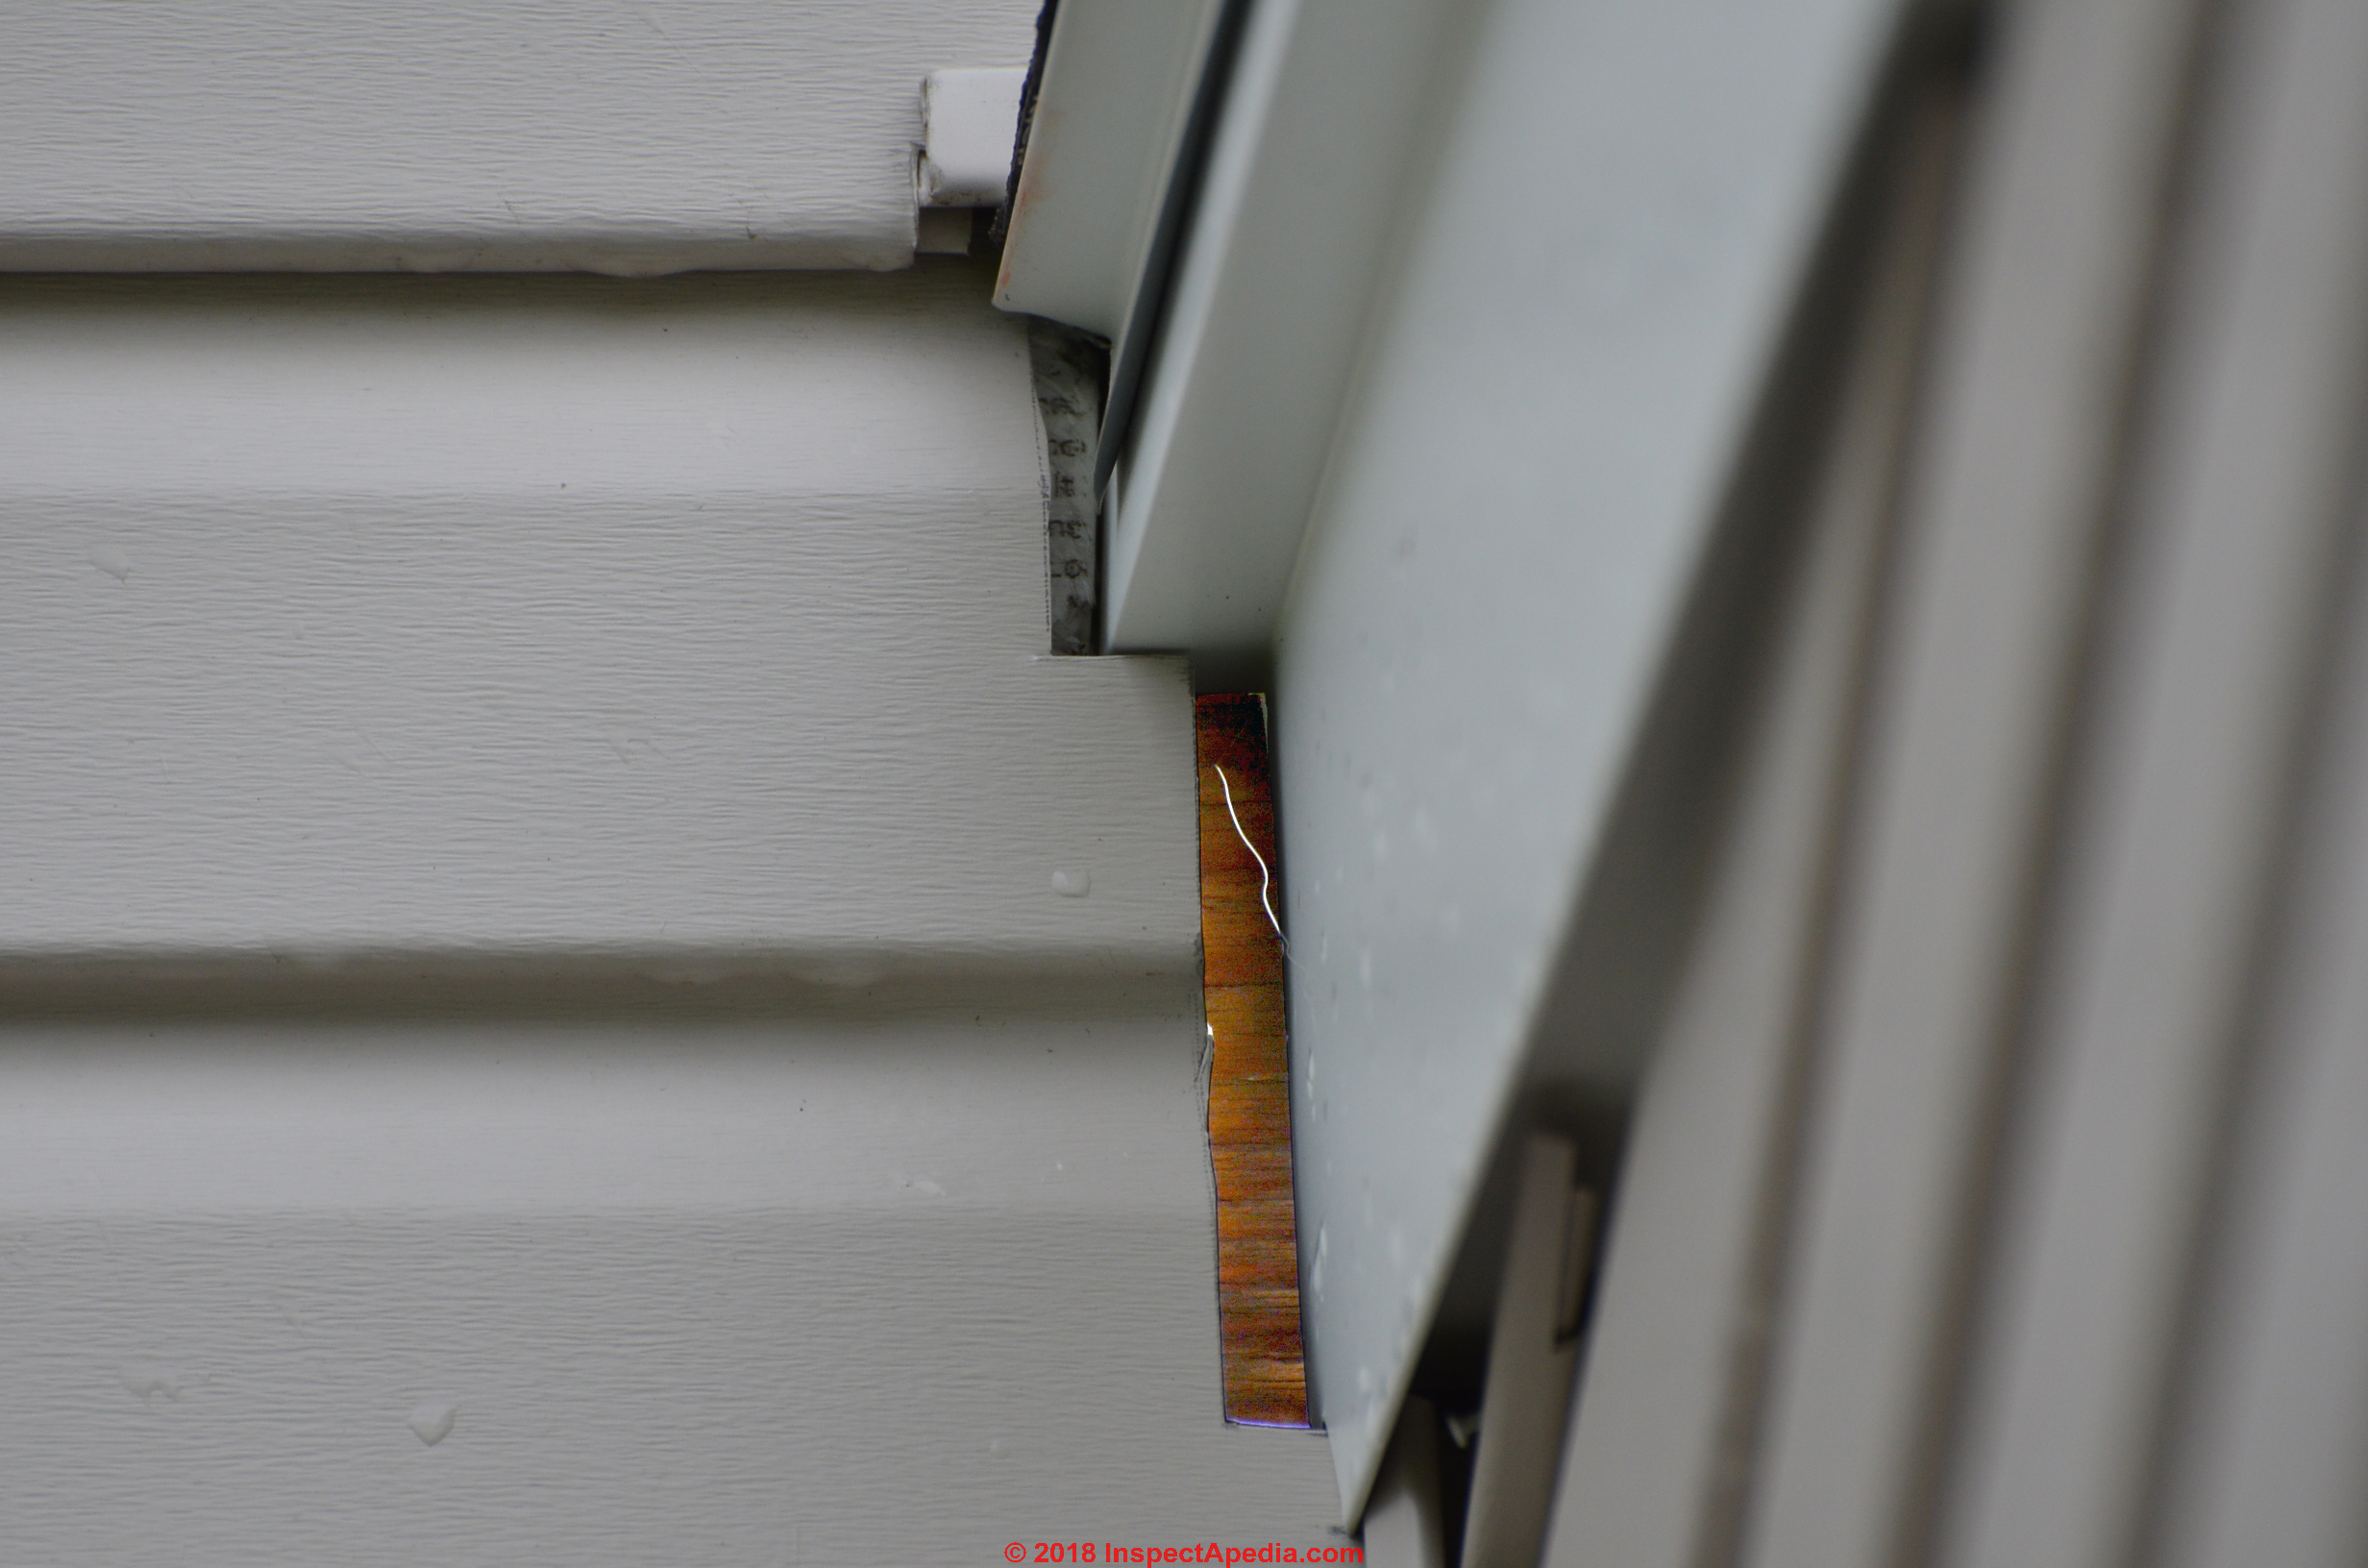 Siding Leak Troubleshooting Diagnose Repair Or Prevent Leaky To Properly Connect An Electrical Outlet C Carson Dunlop Associates Wet Area On Foundation Below May Come From Higher Wall